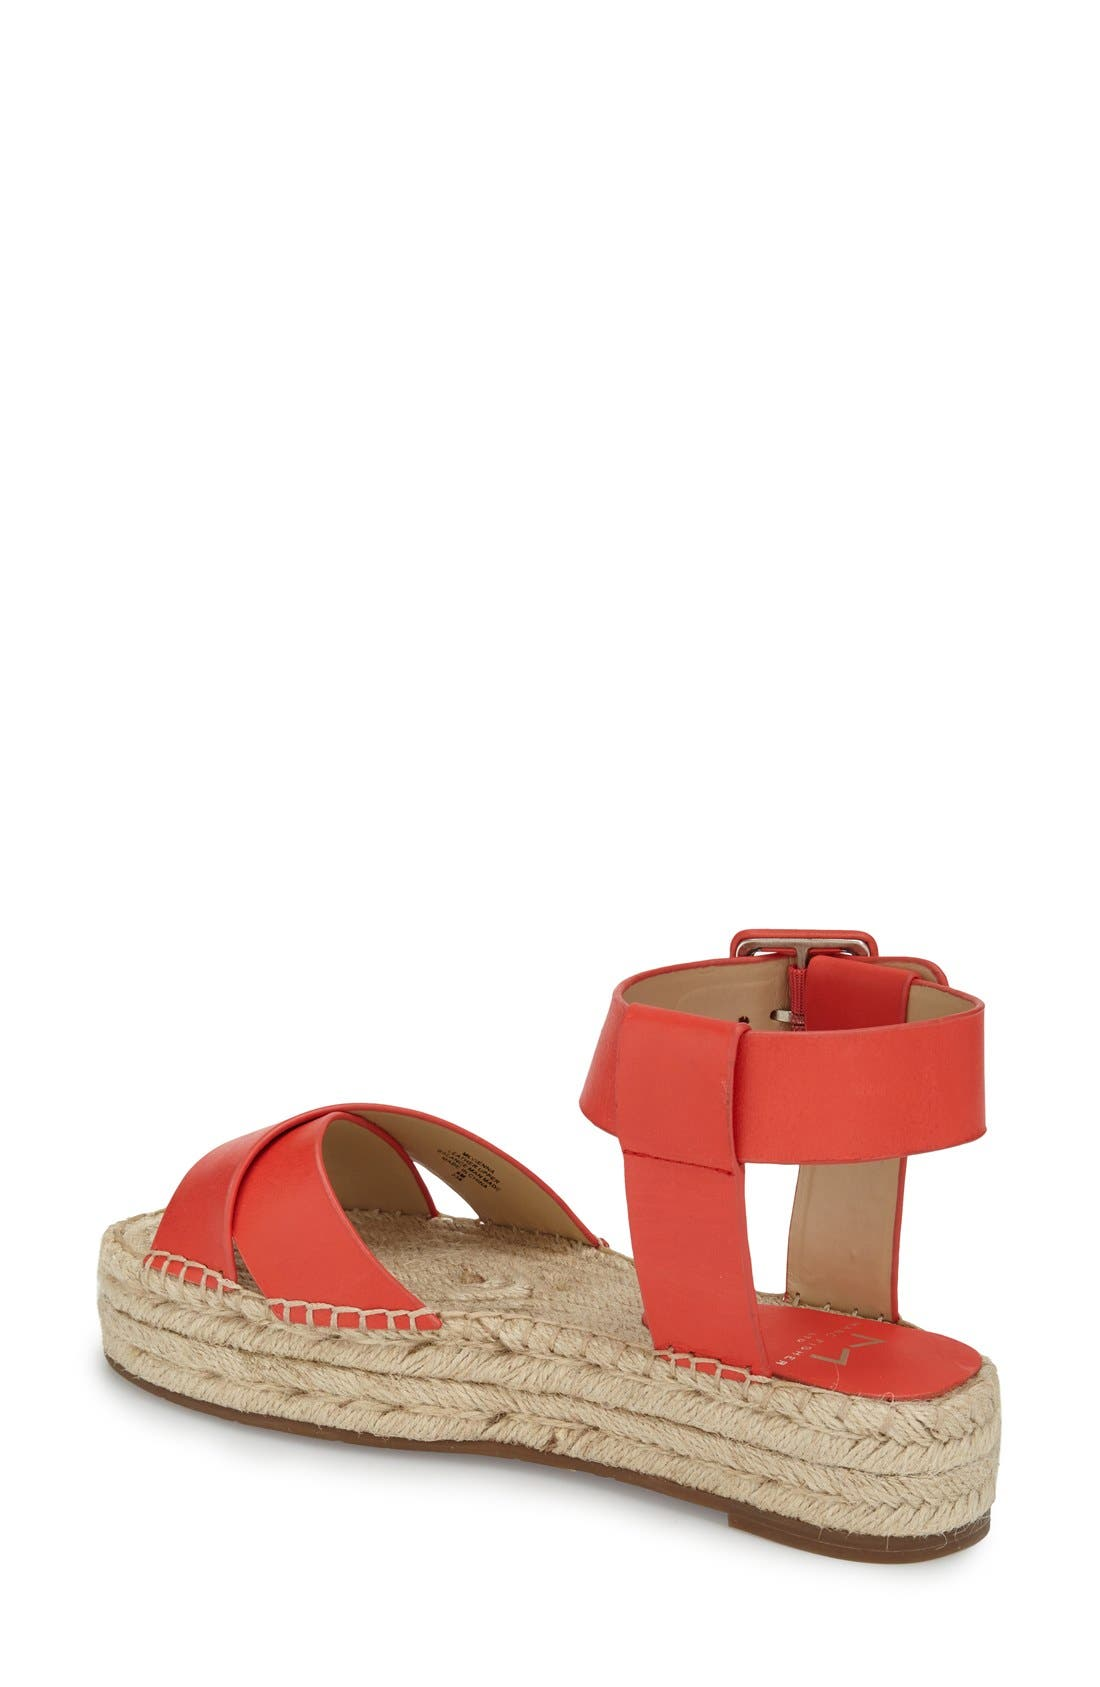 'Vienna' Espadrille Sandal,                             Alternate thumbnail 2, color,                             Red Leather